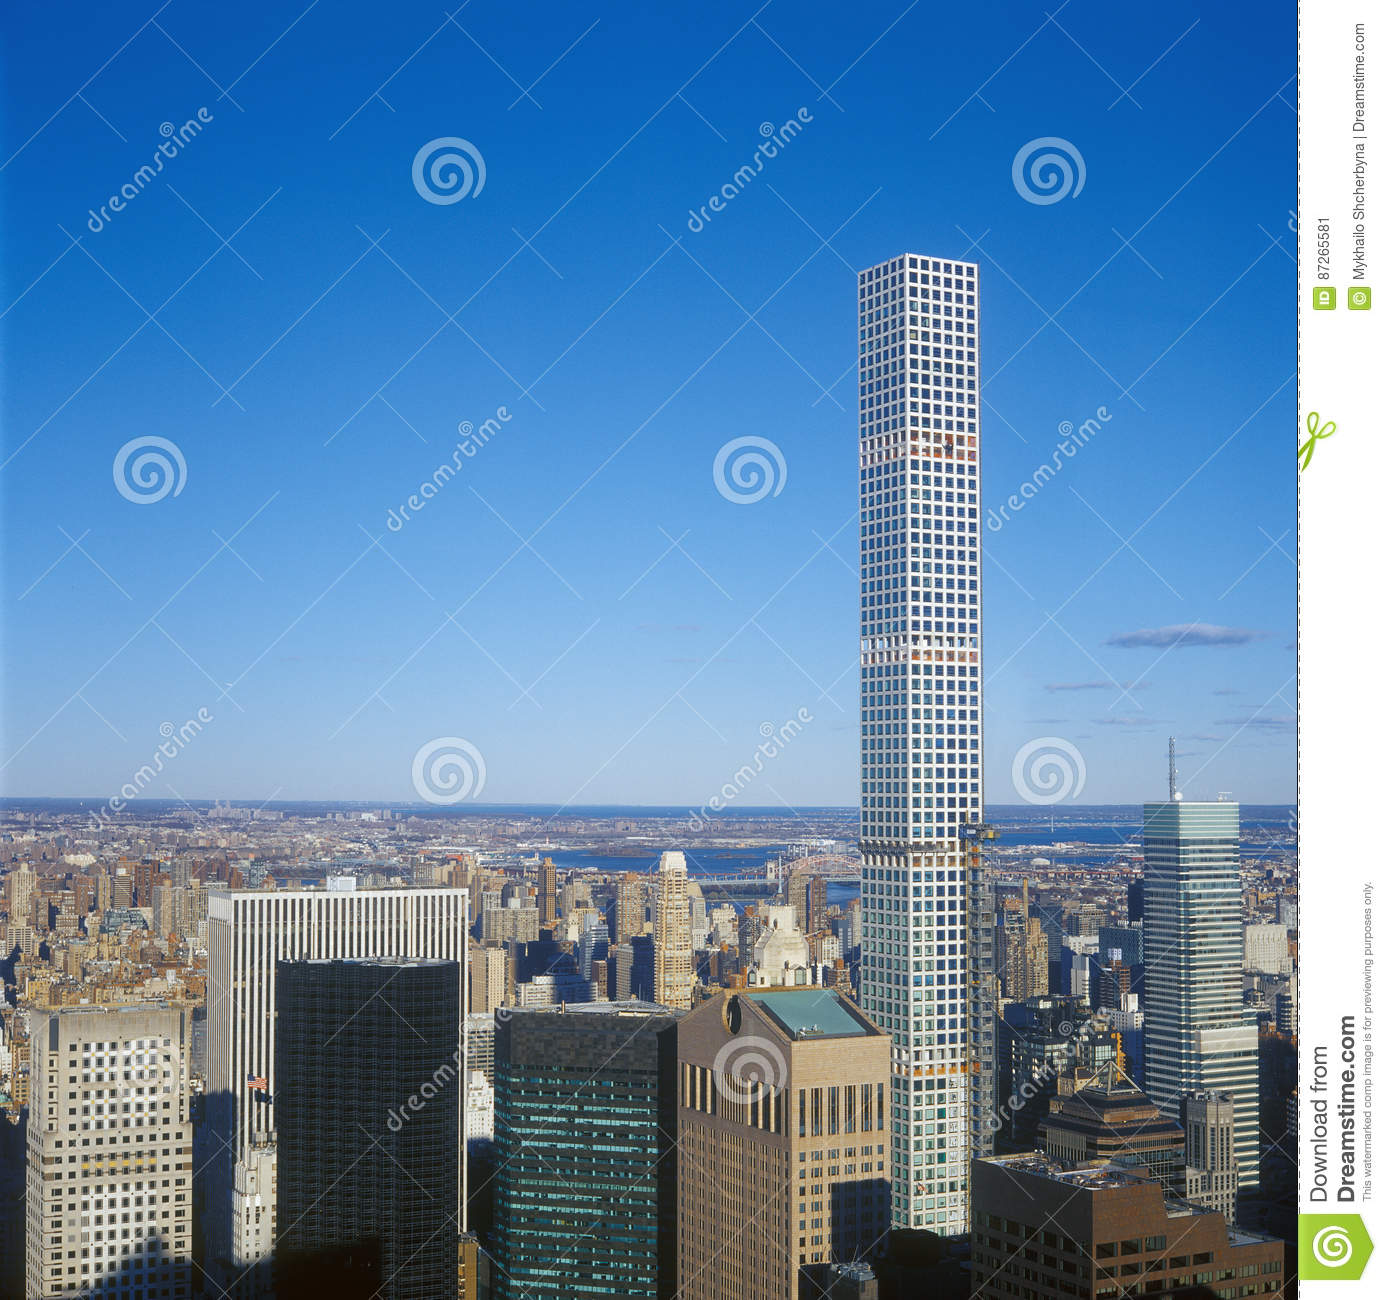 Tallest Residential Building Nyc Aerial View Of The New York City 432 Park Avenue Stock